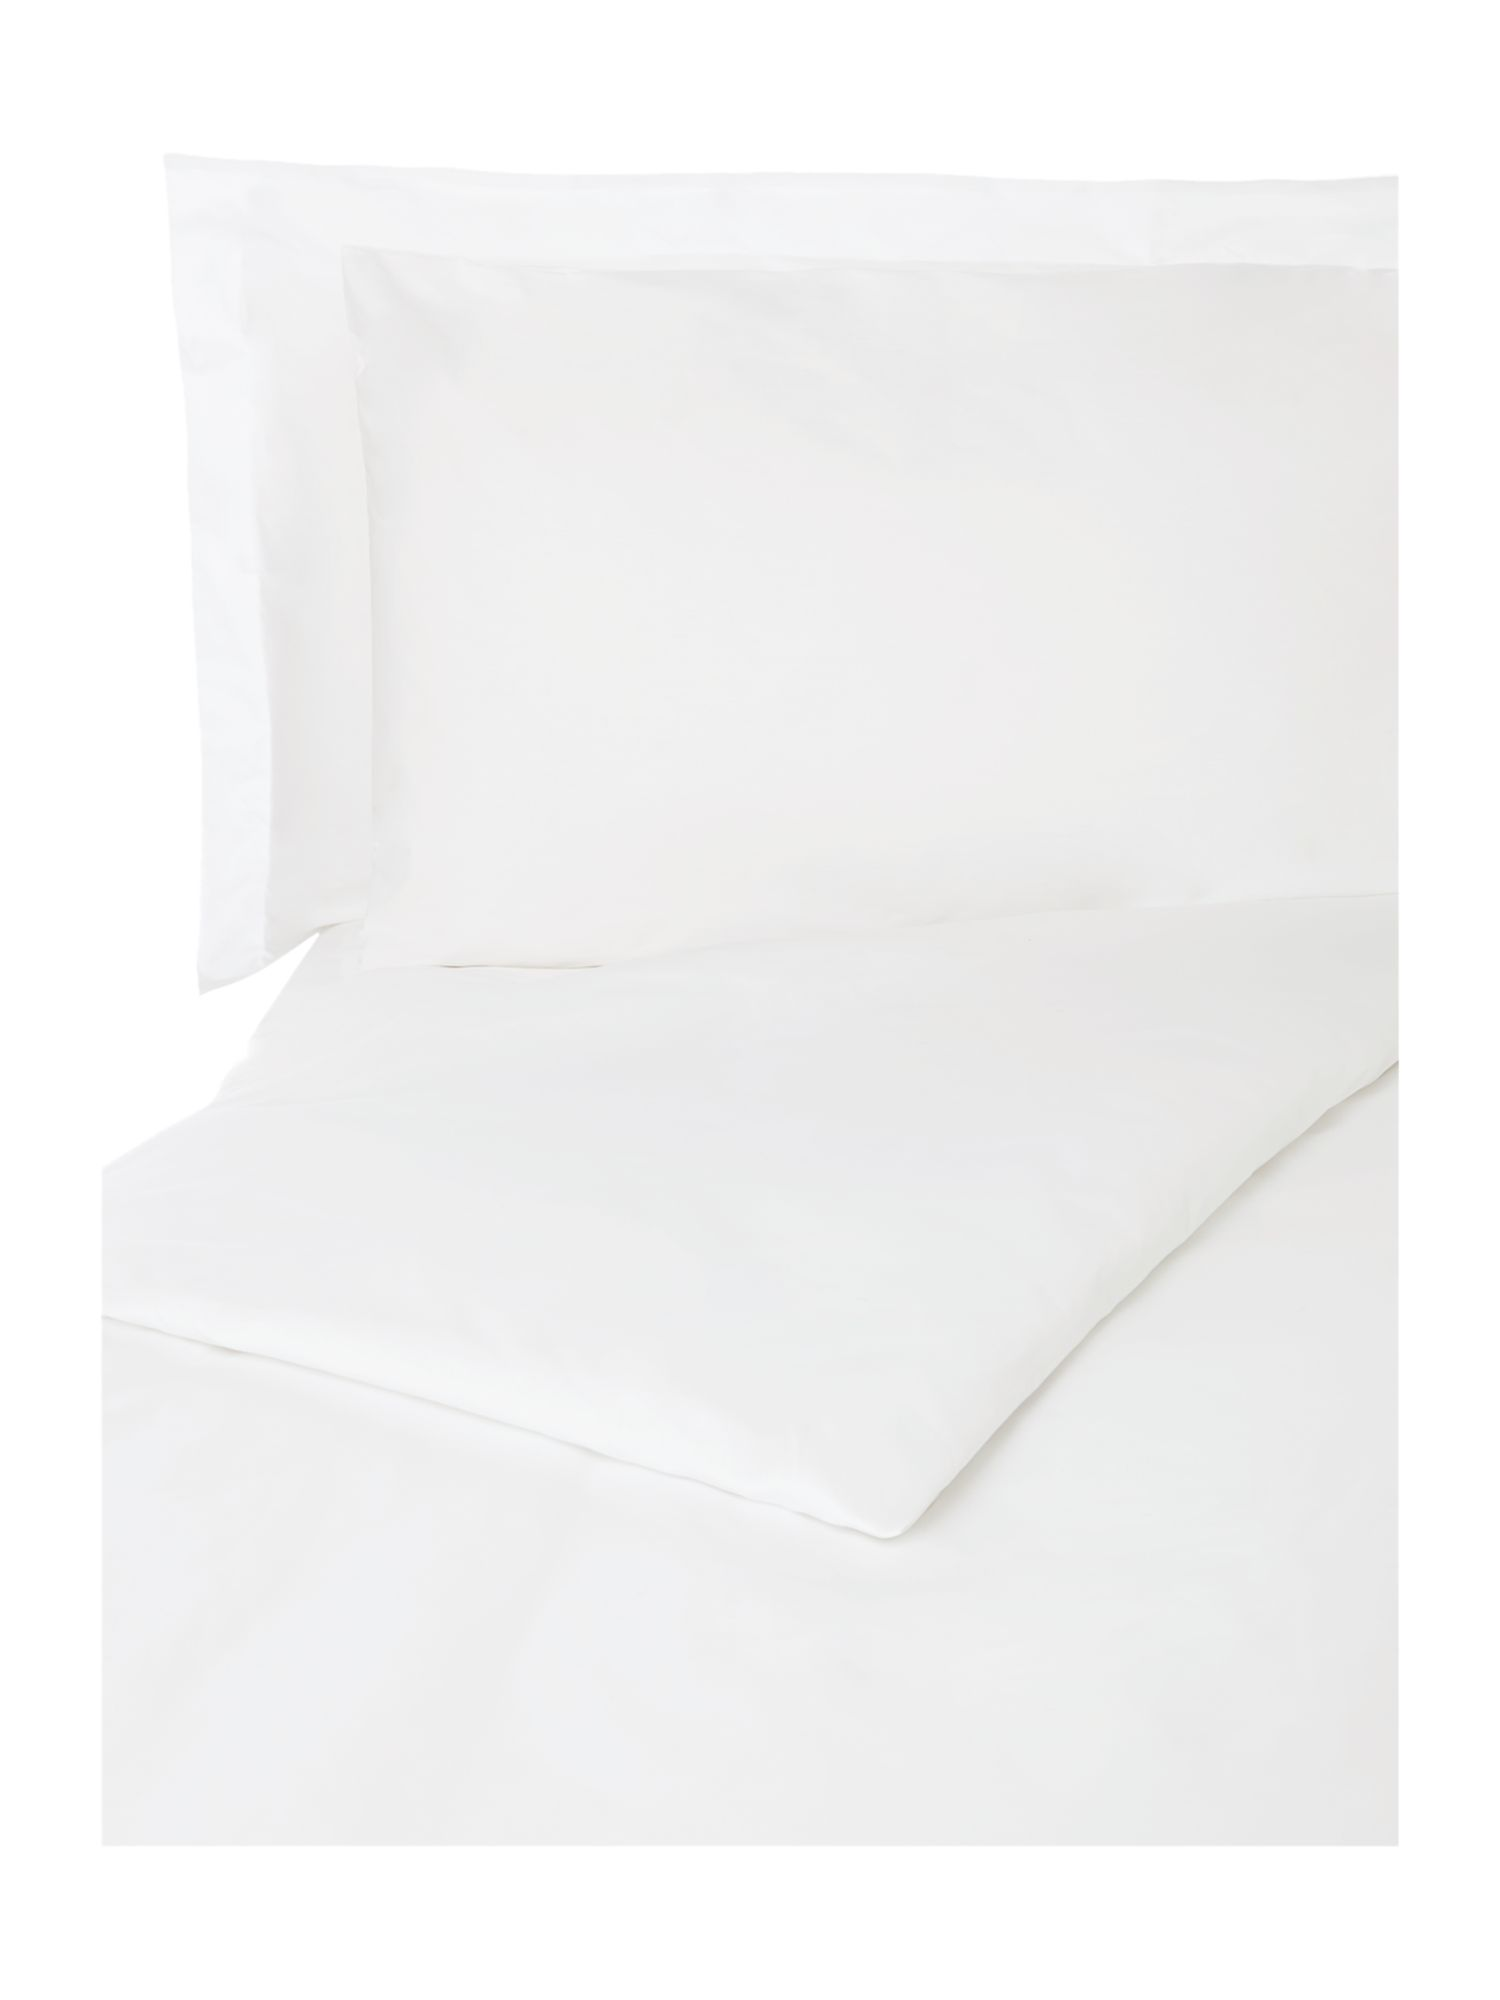 Egyptian ivory 200thread count hwife pillowcase